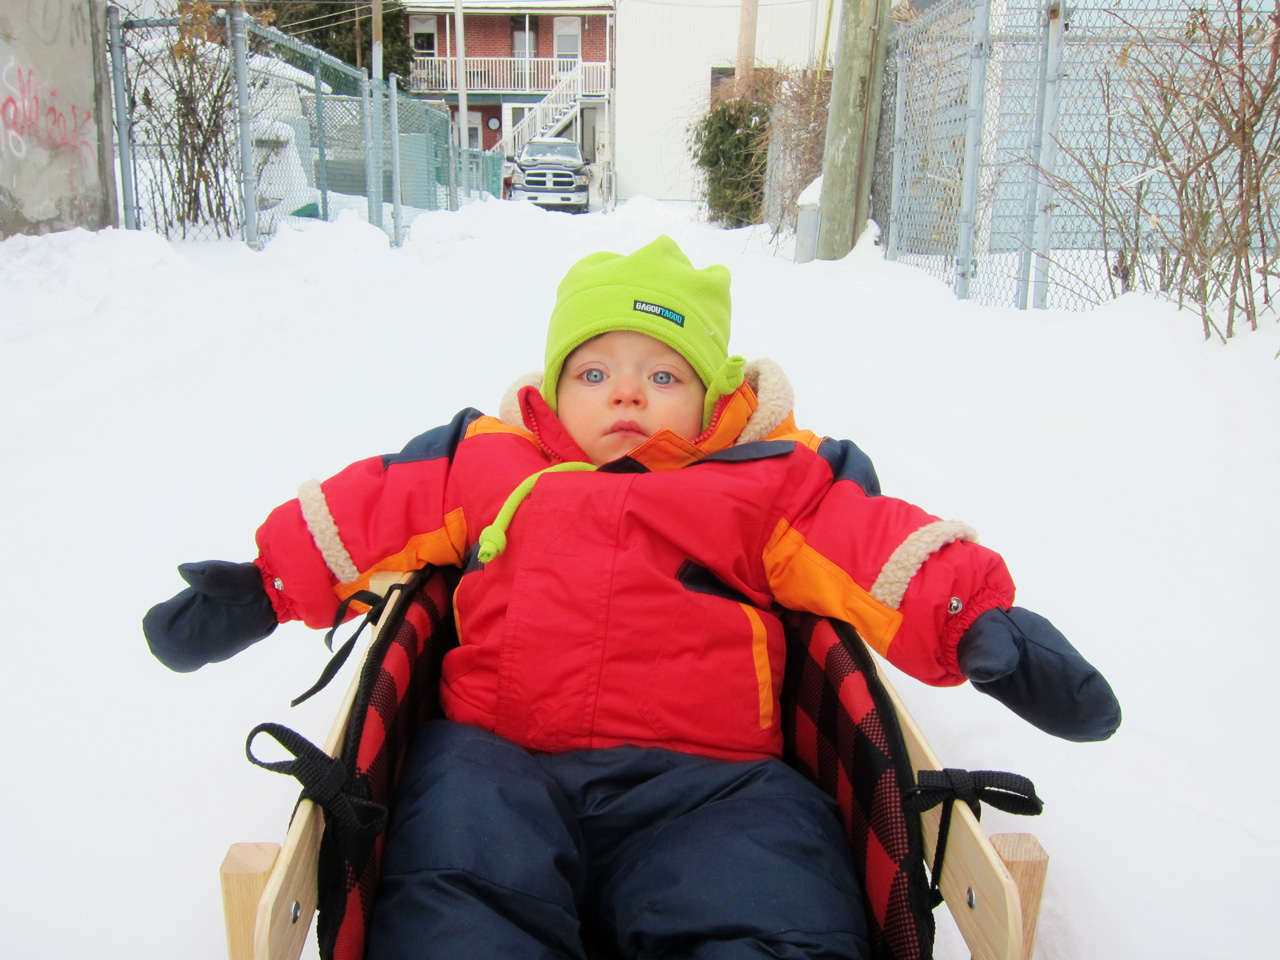 Boo Boo sitting in his sled